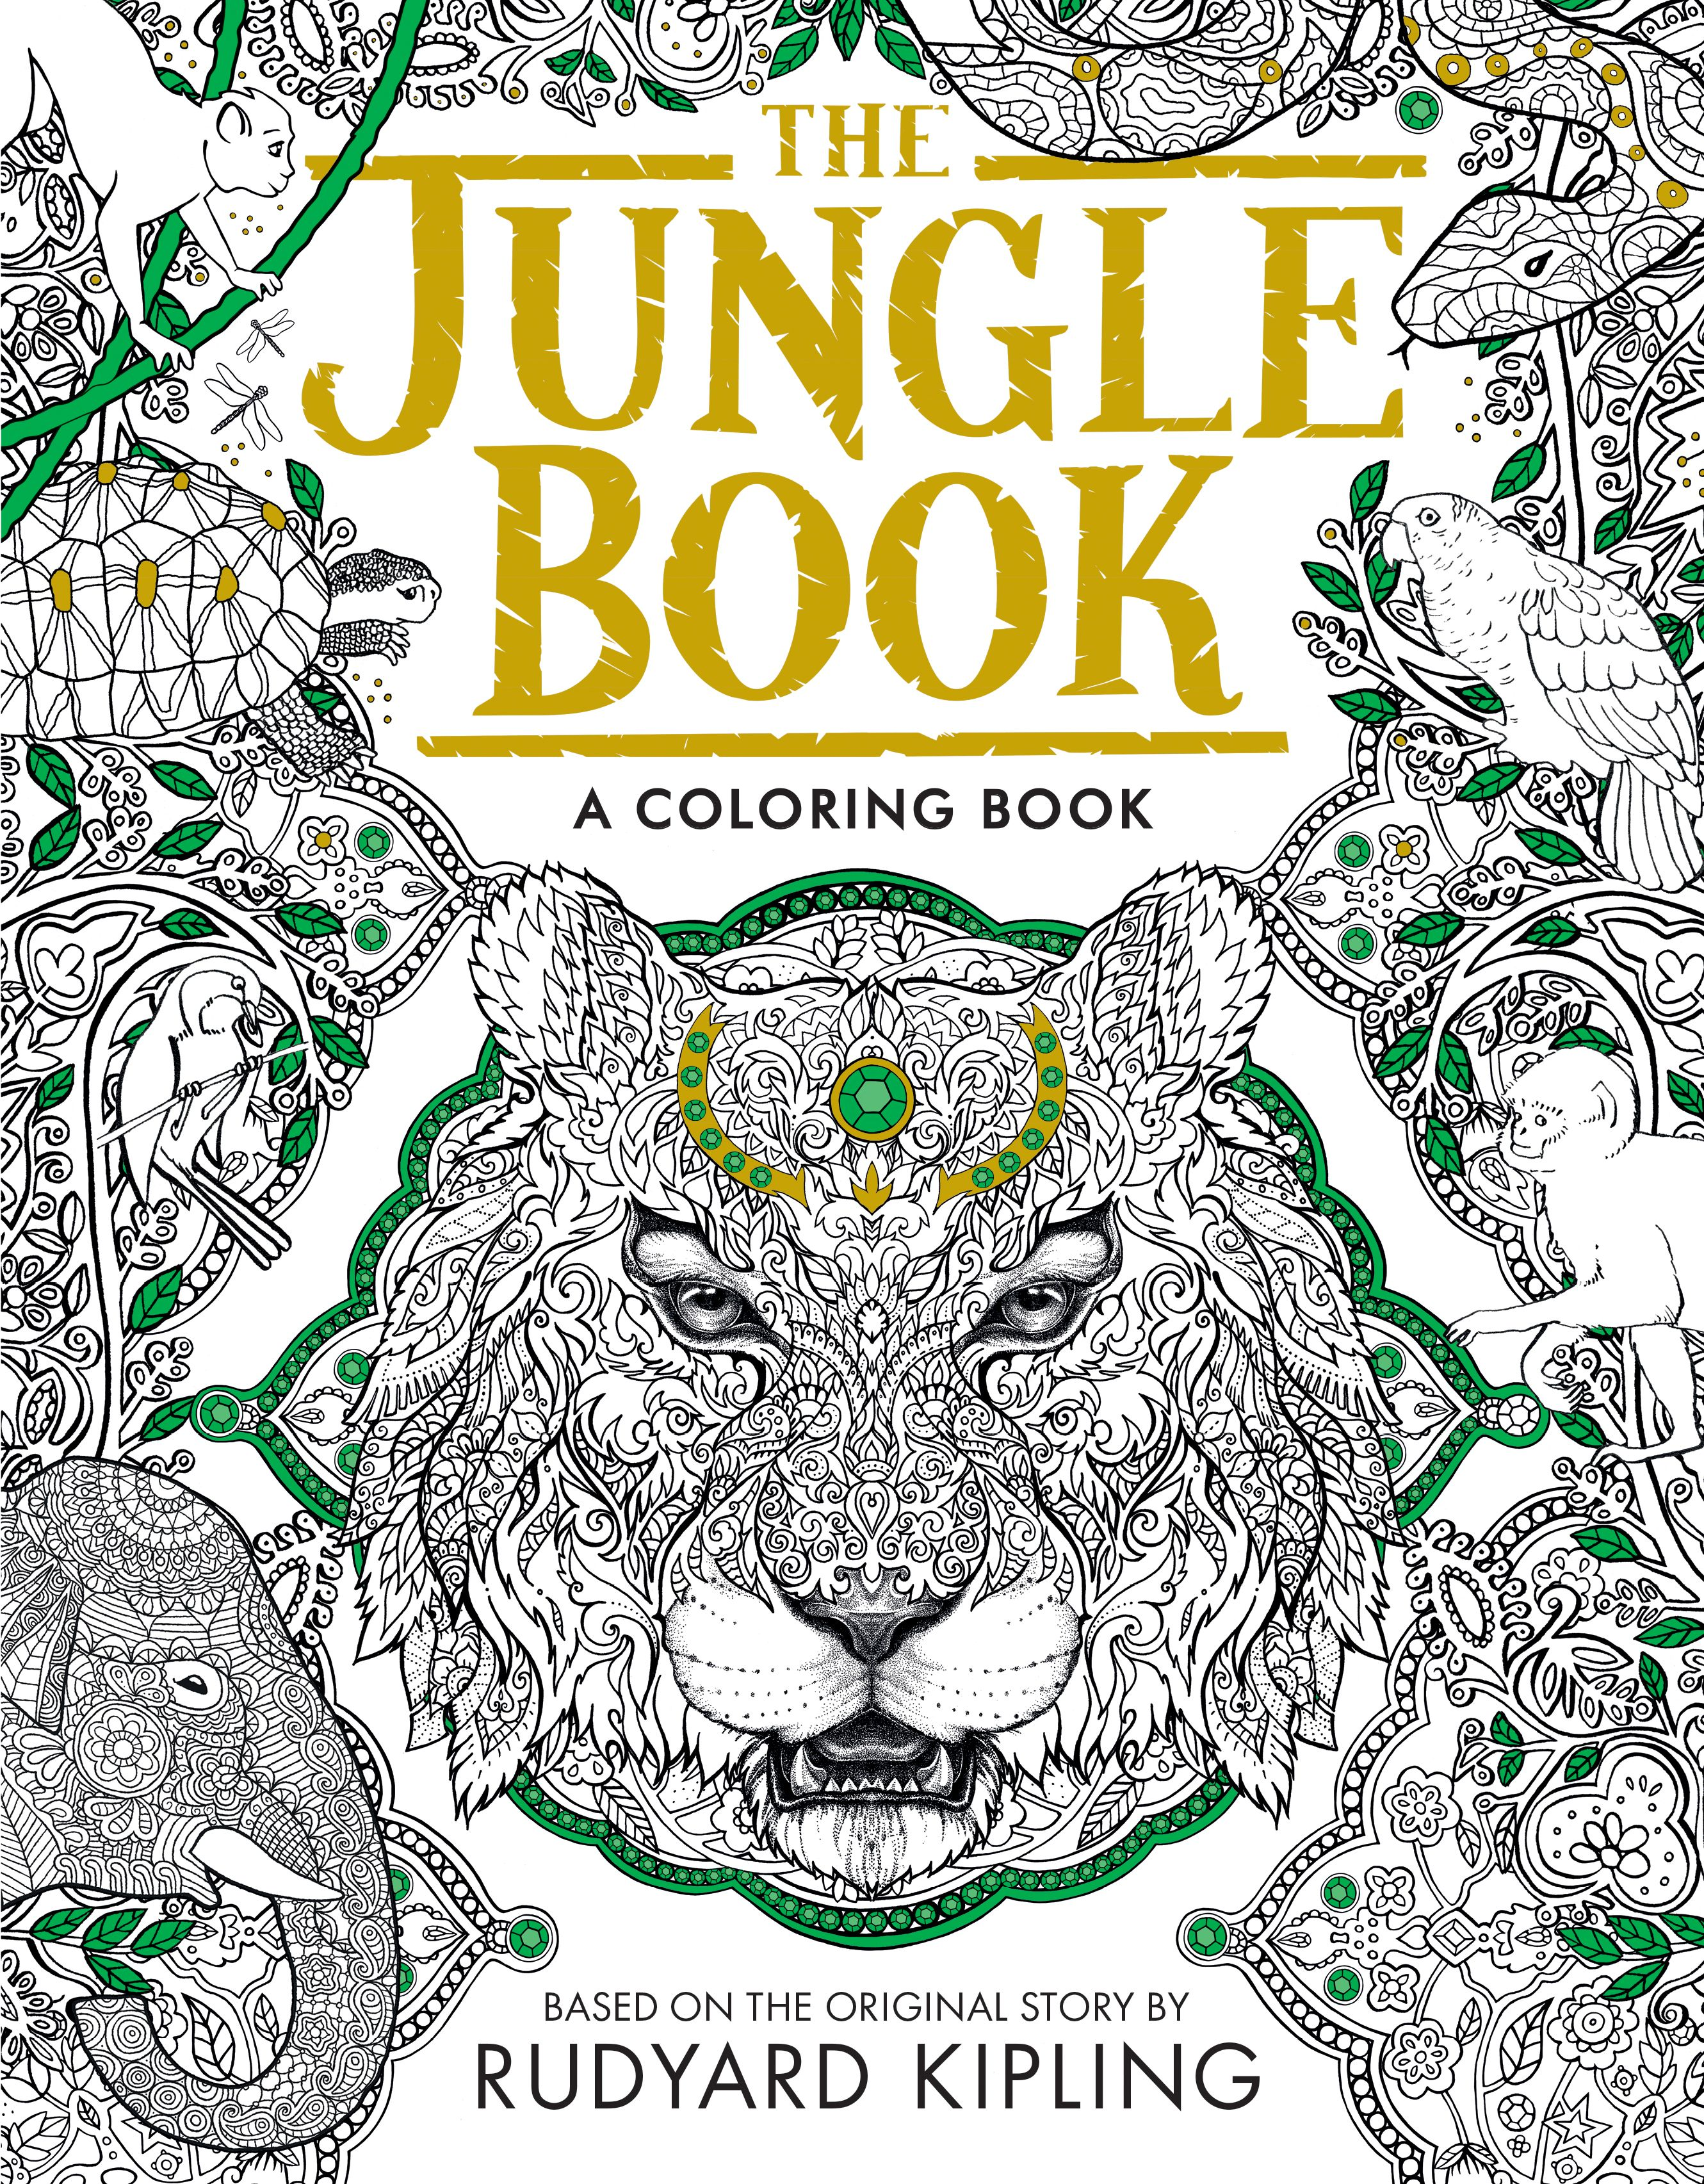 Jungle book colouring in pictures - The Macmillan Jungle Book Colouring Book Disney The Jungle Book